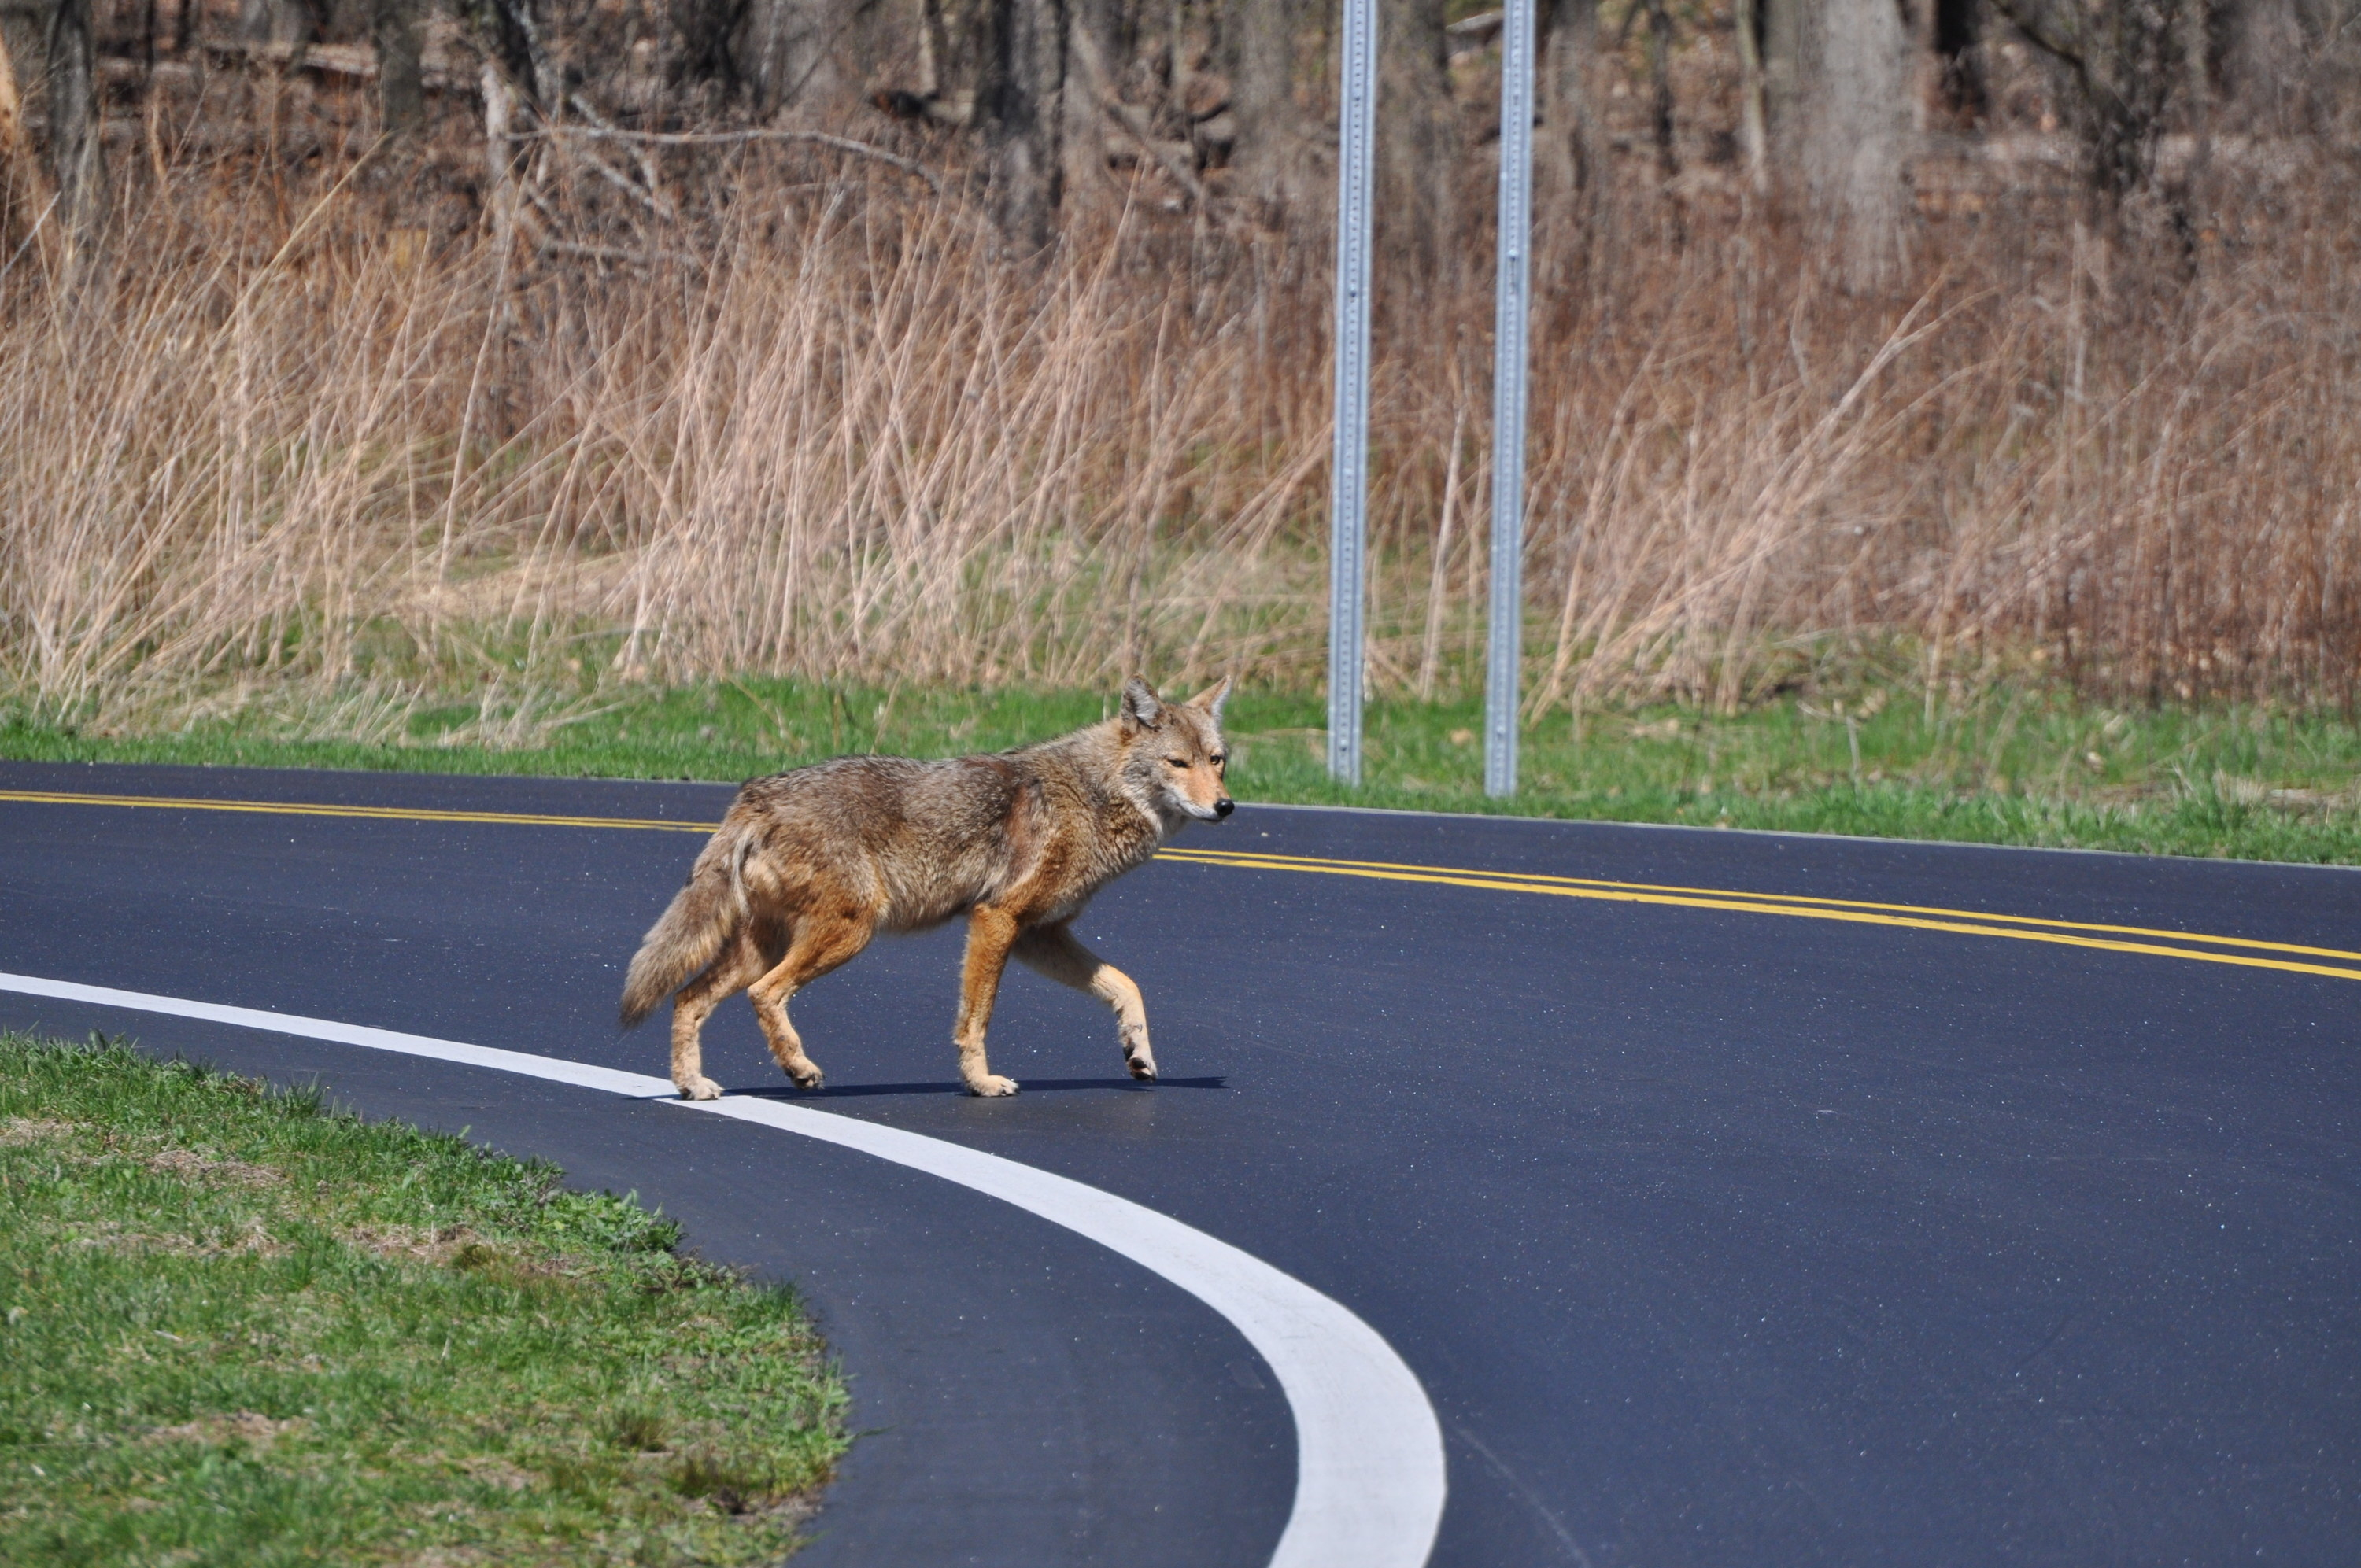 A coyote walking across a deserted road